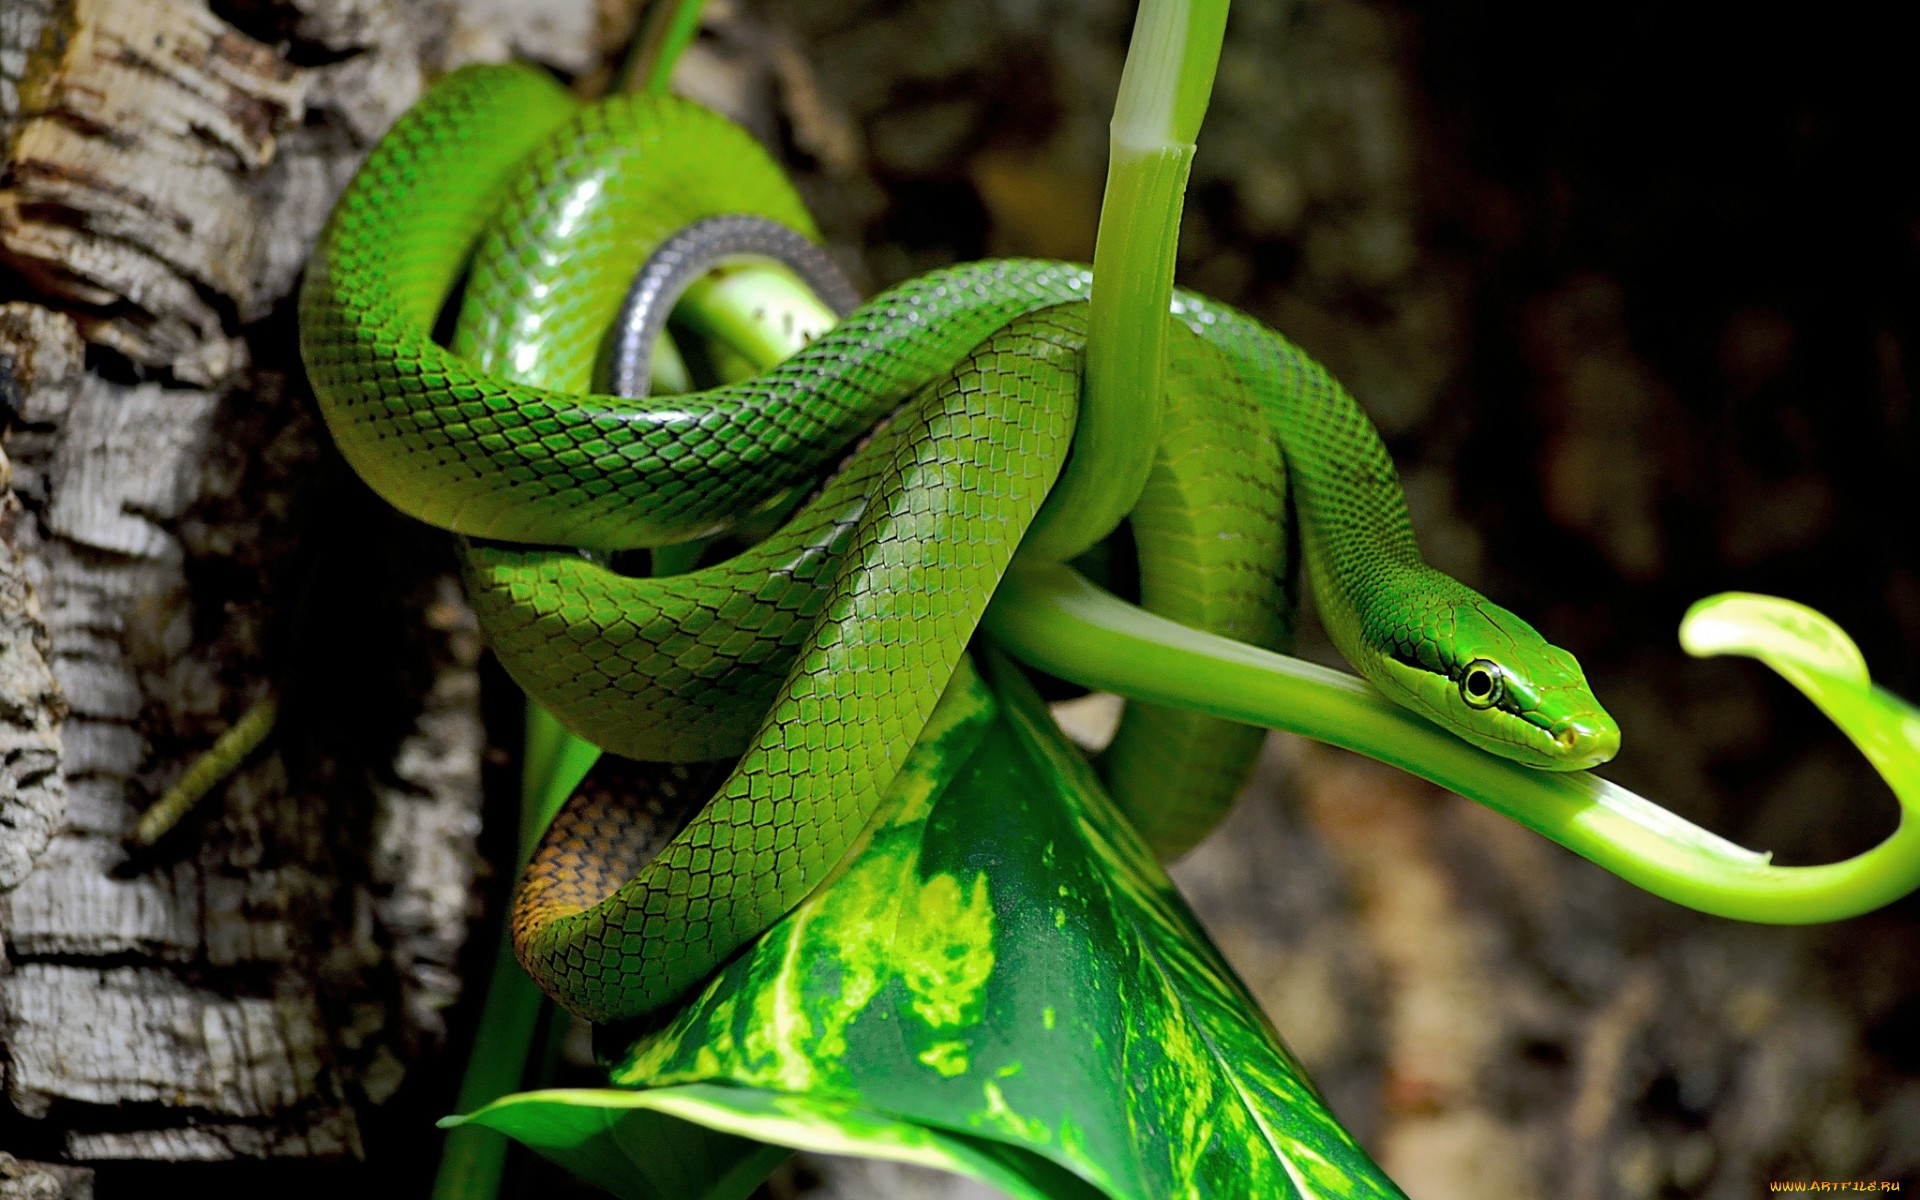 Snakes Wallpapers Super Snakes Images